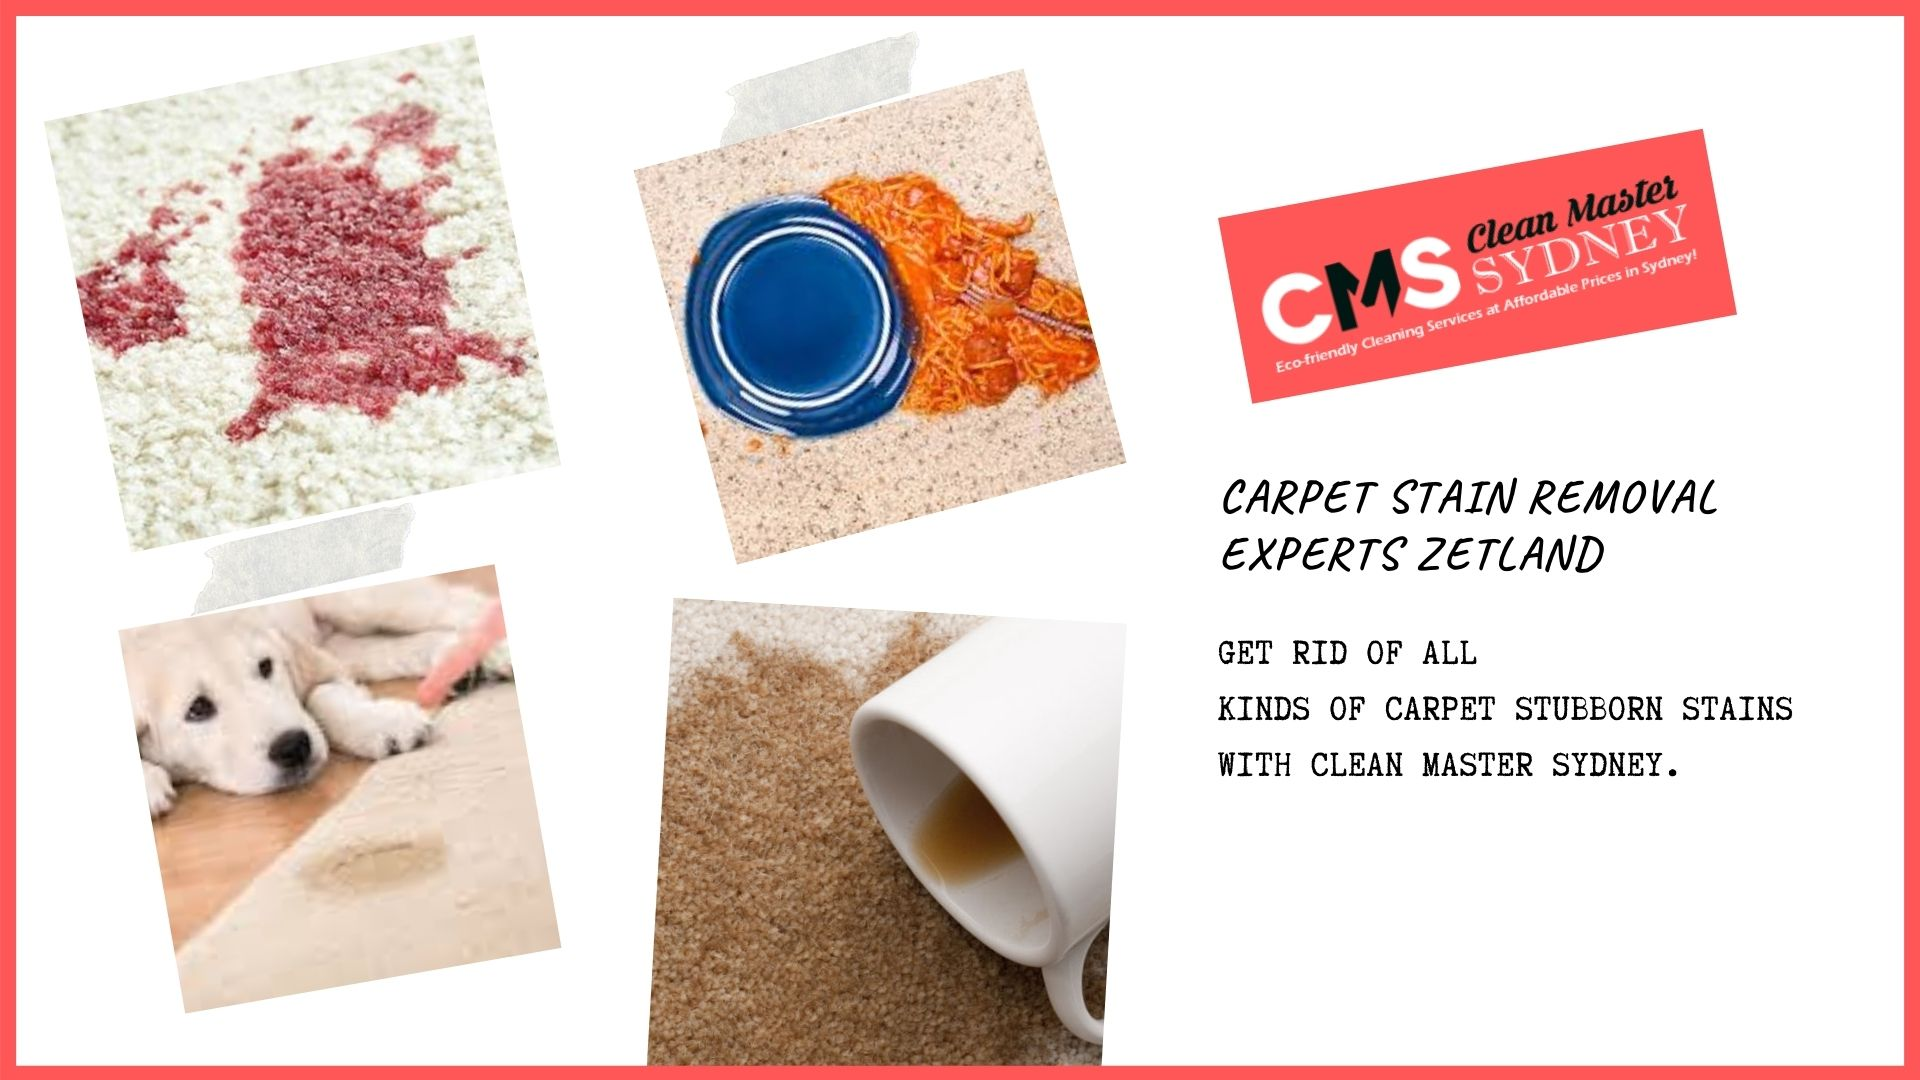 Carpet Stain Removal Experts Zetland